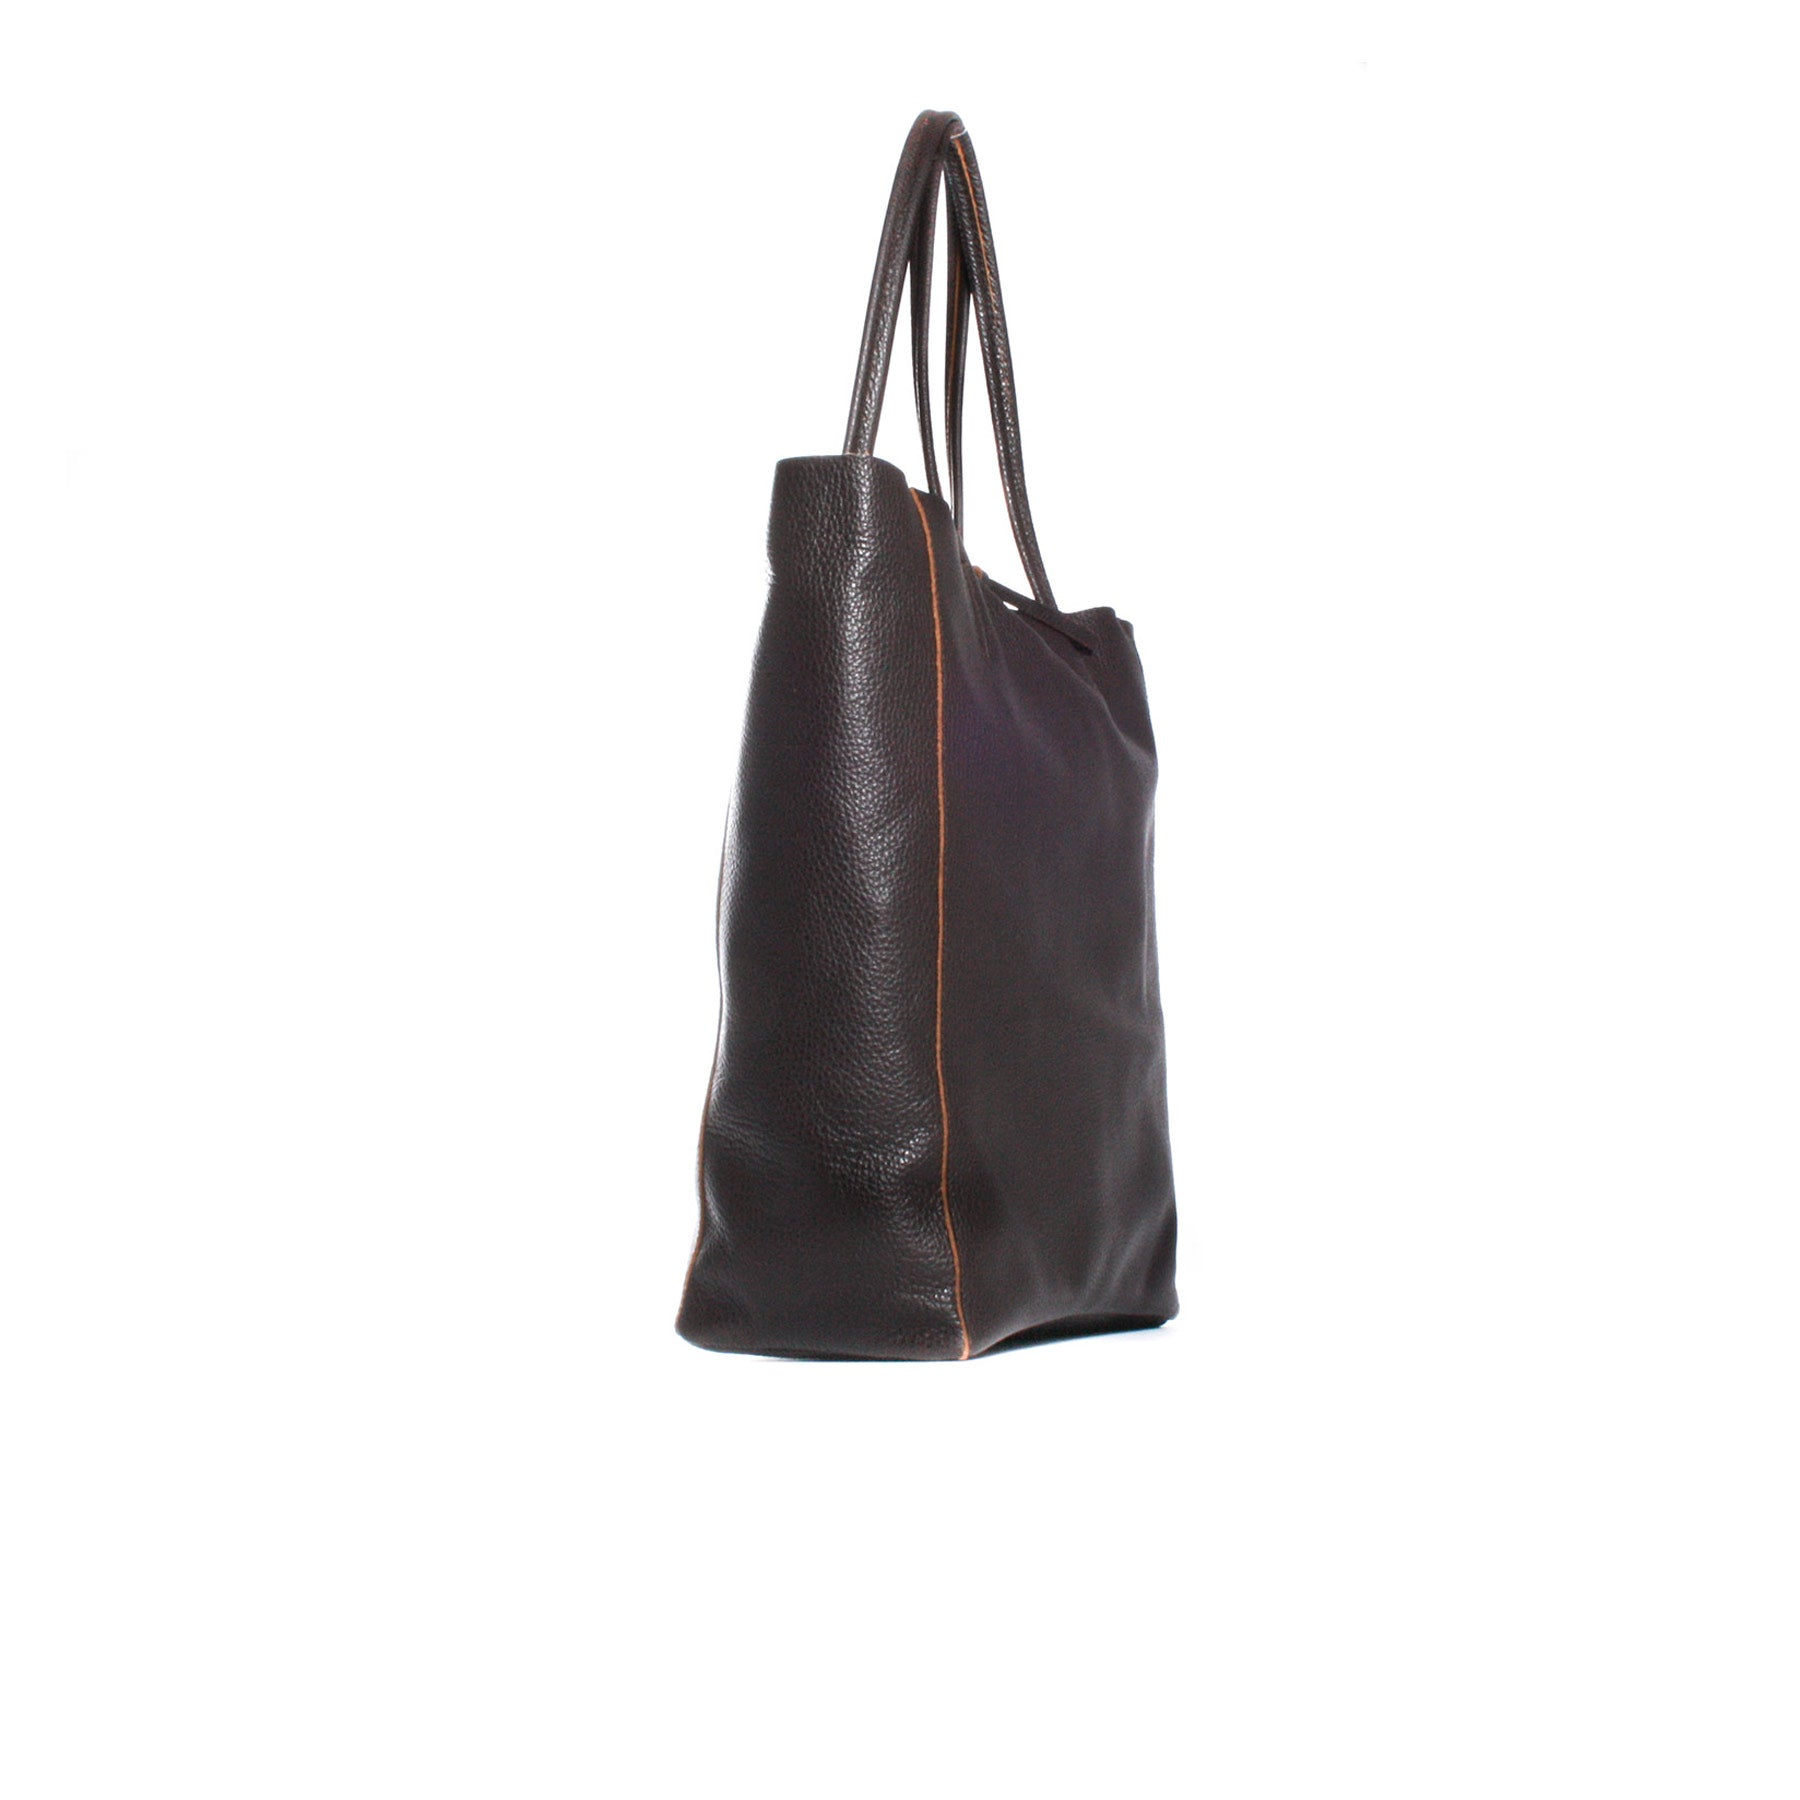 Colette Brown Leather